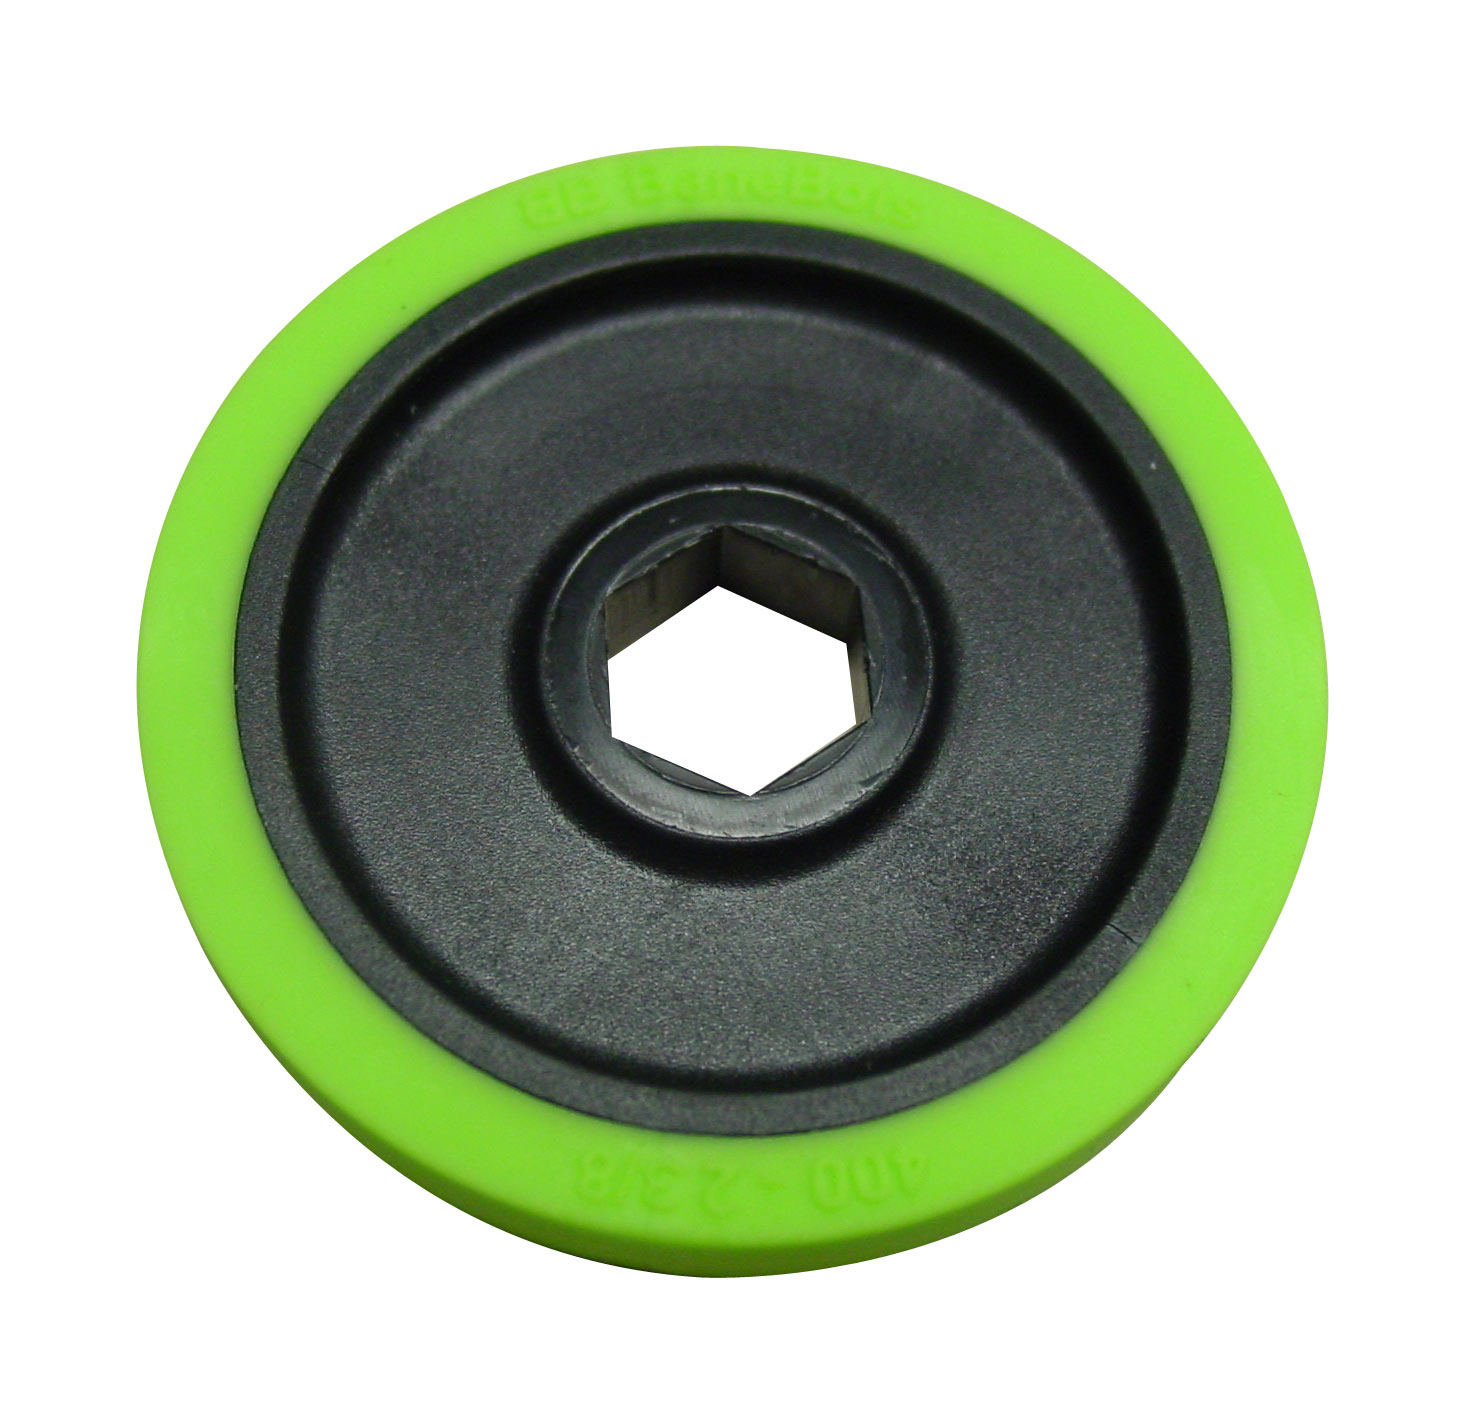 BaneBots Wheel, 2-3/8 x 0.4in., 1/2in. Hex Mount, 30A Green